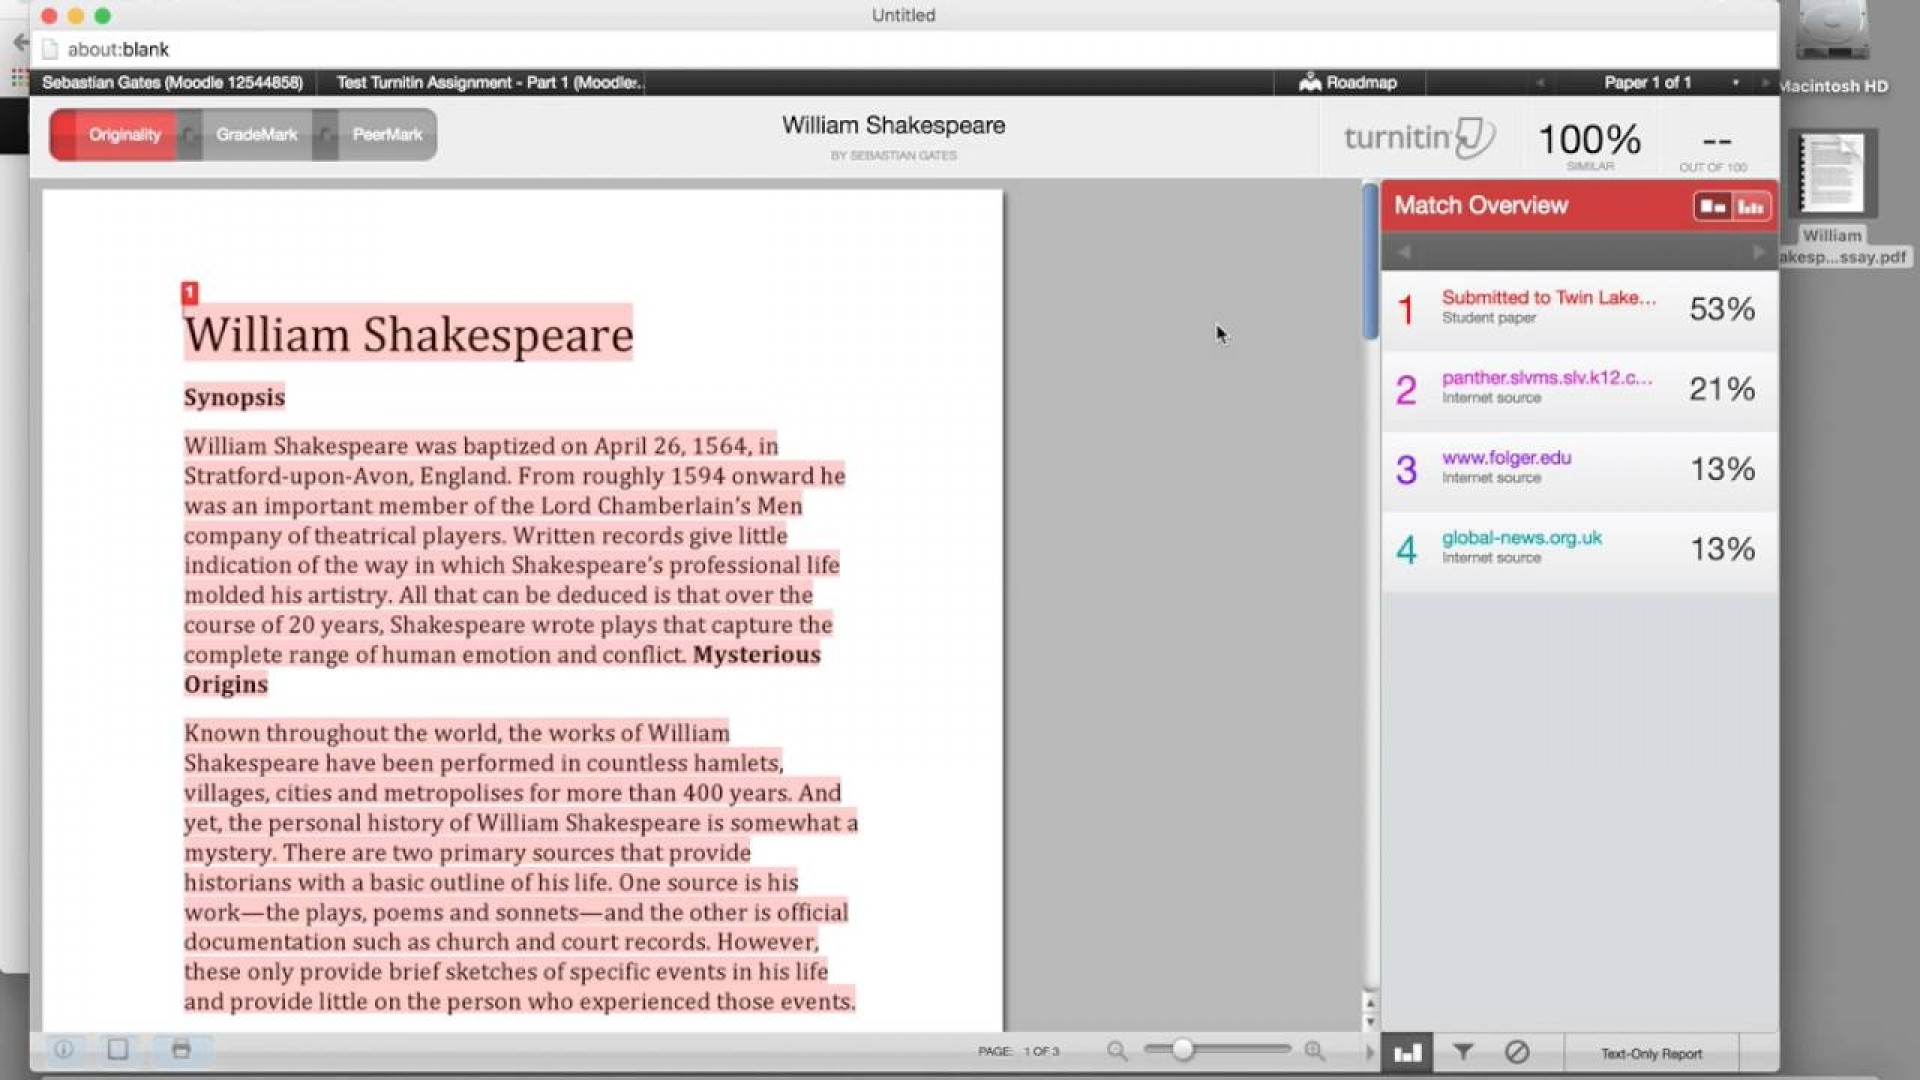 002 Maxresdefault Essay Example Similarity Incredible Checker Turnitin Check Free Plagiarism Download 1920